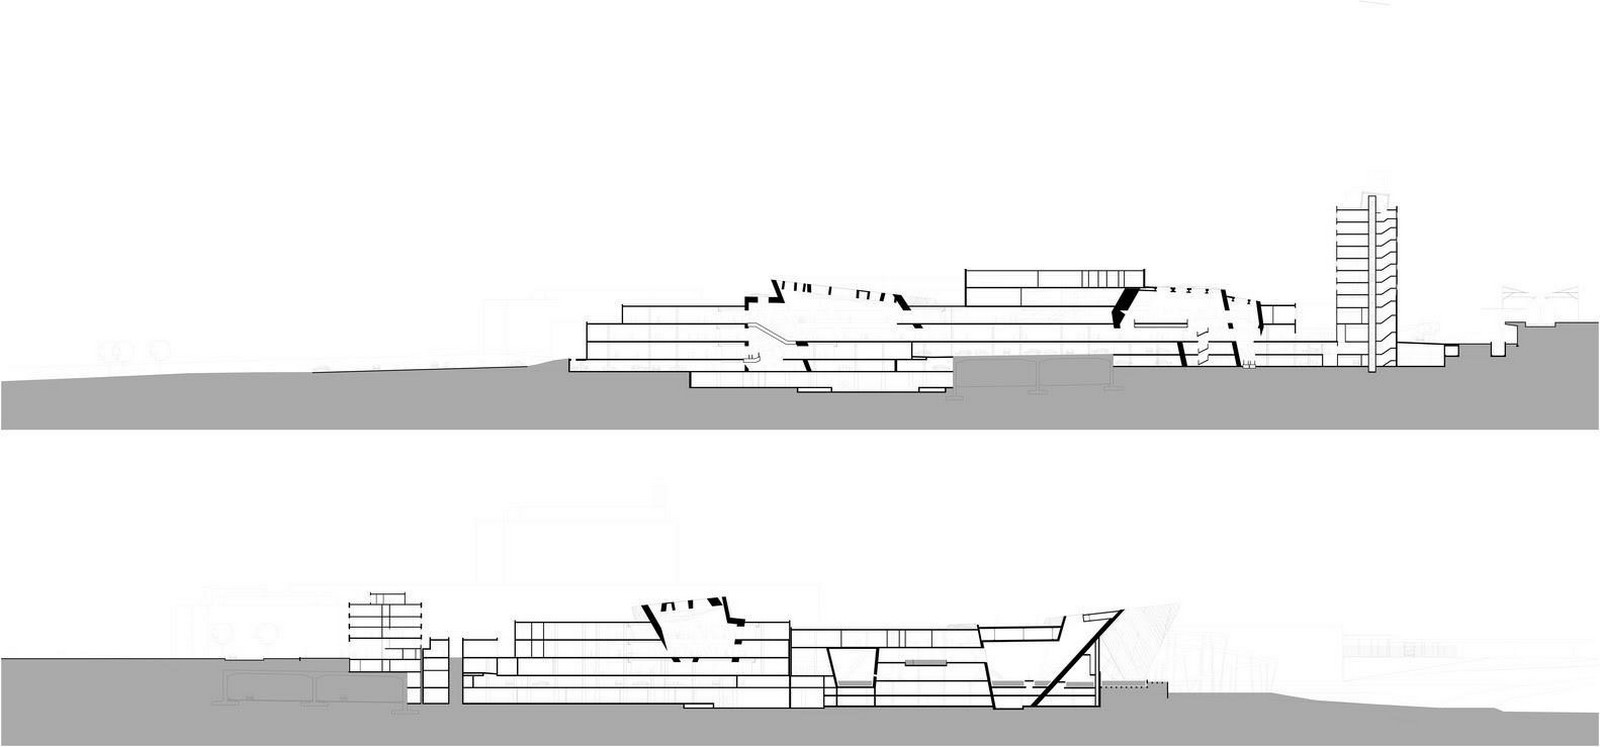 Westside Shopping and Leisure Centre by Daniel Libeskind: Unification of commerce, culture and leisure - Sheet11